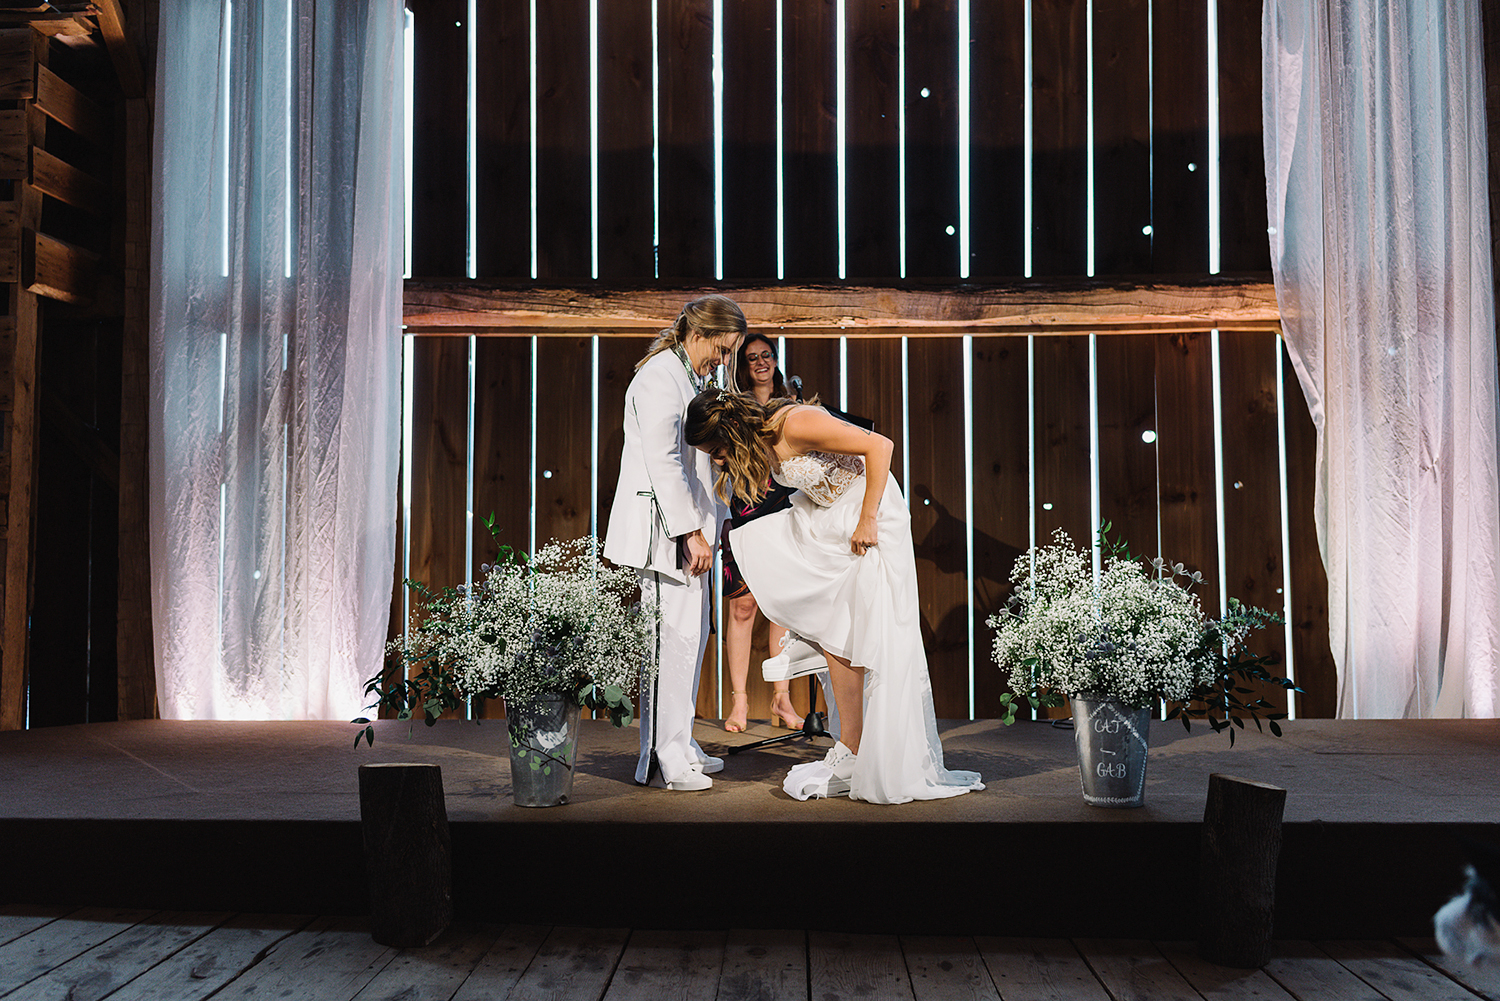 cambium-farms-wedding-ryanne-hollies-photography-gay-wedding-lgbtq-trendy-cool-badass-junebug-weddings-inspiration-ceremony-in-old-barn-bride-and-bride-vows-crying-reaction-support-gay-marriage-toronto-pride-2018-jewish-wedding.jpg